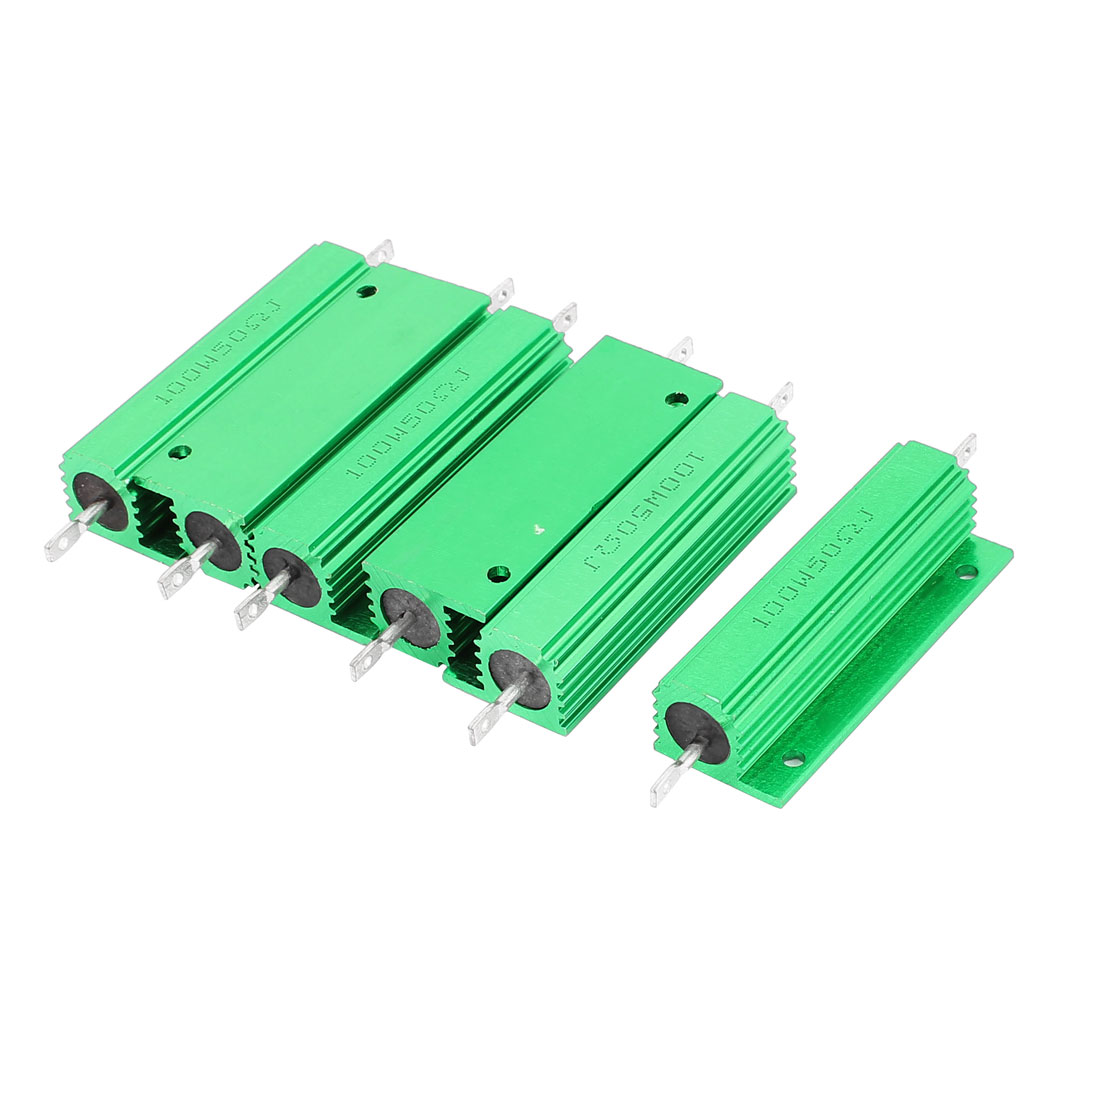 6Pcs Aluminum Housed 100W Watt 50 Ohm 5% Tolerance Fixed Resistor Green